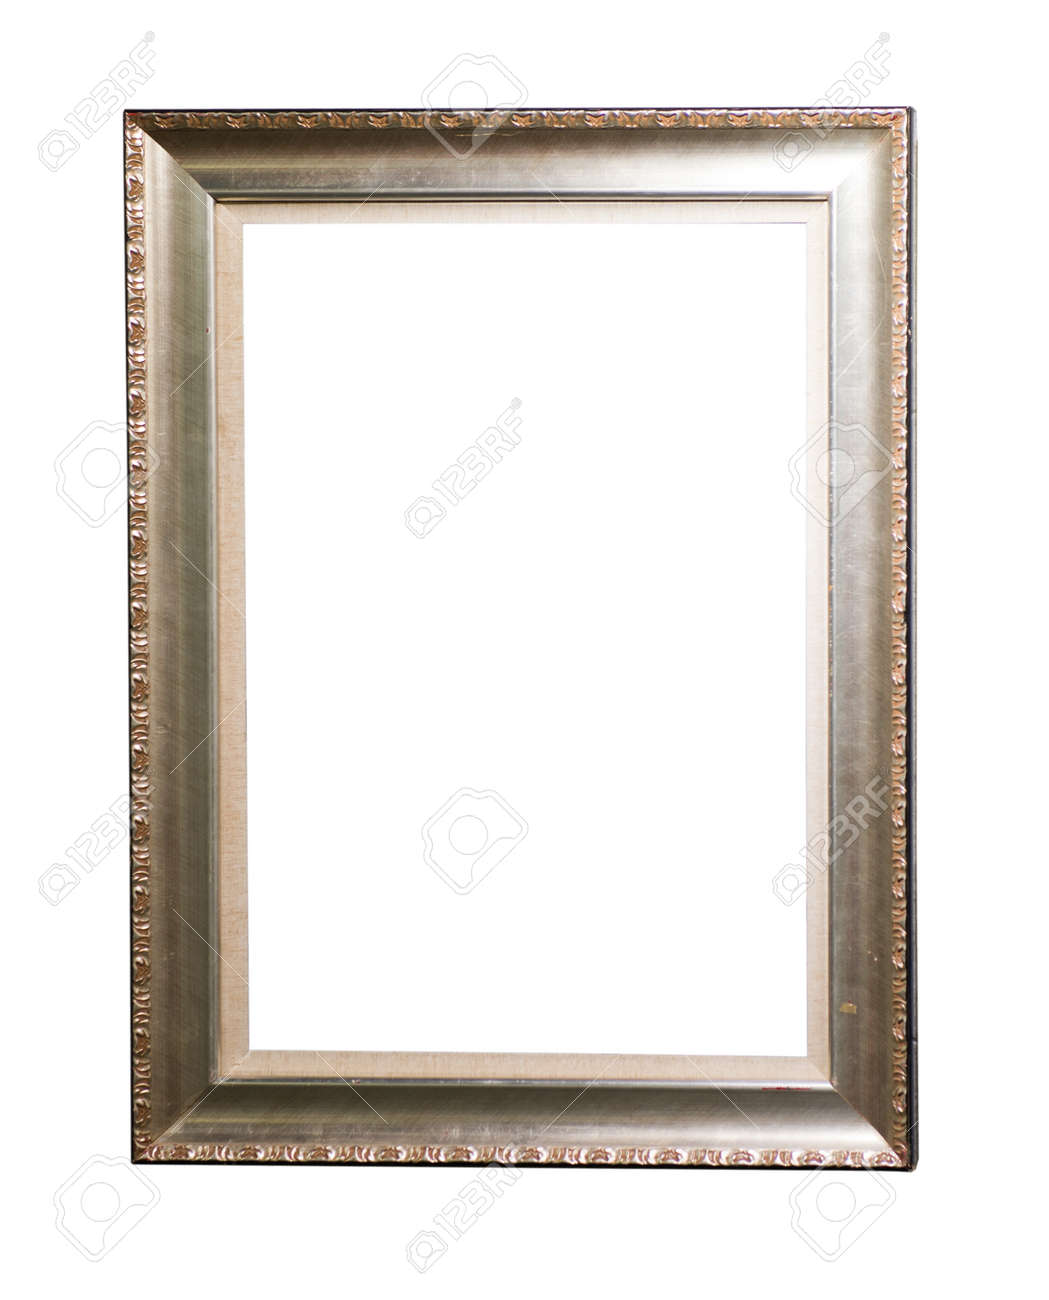 gold antique picture frame Stock Photo - 22836829